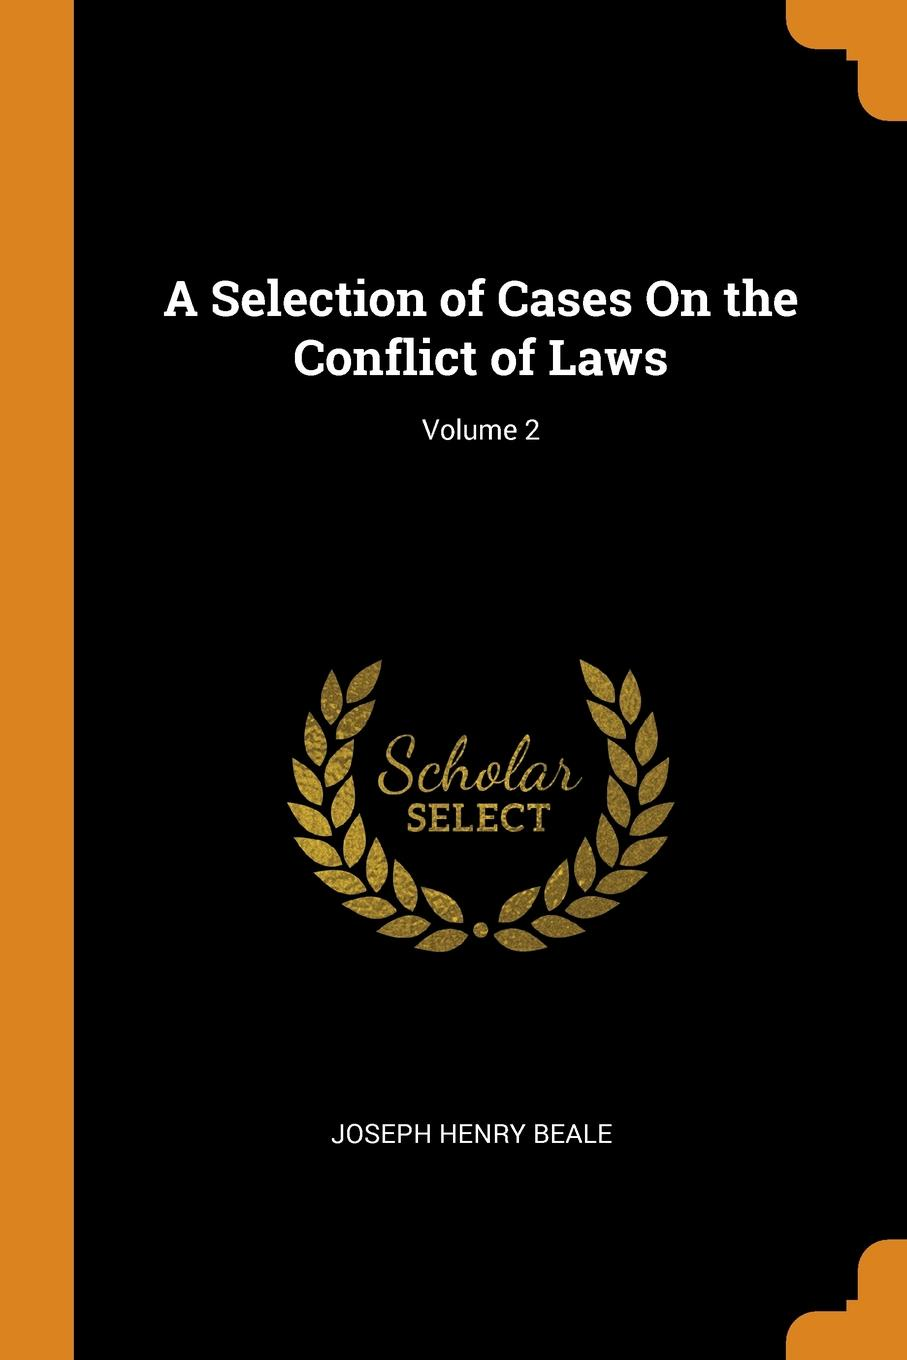 A Selection of Cases On the Conflict of Laws; Volume 2. Joseph Henry Beale